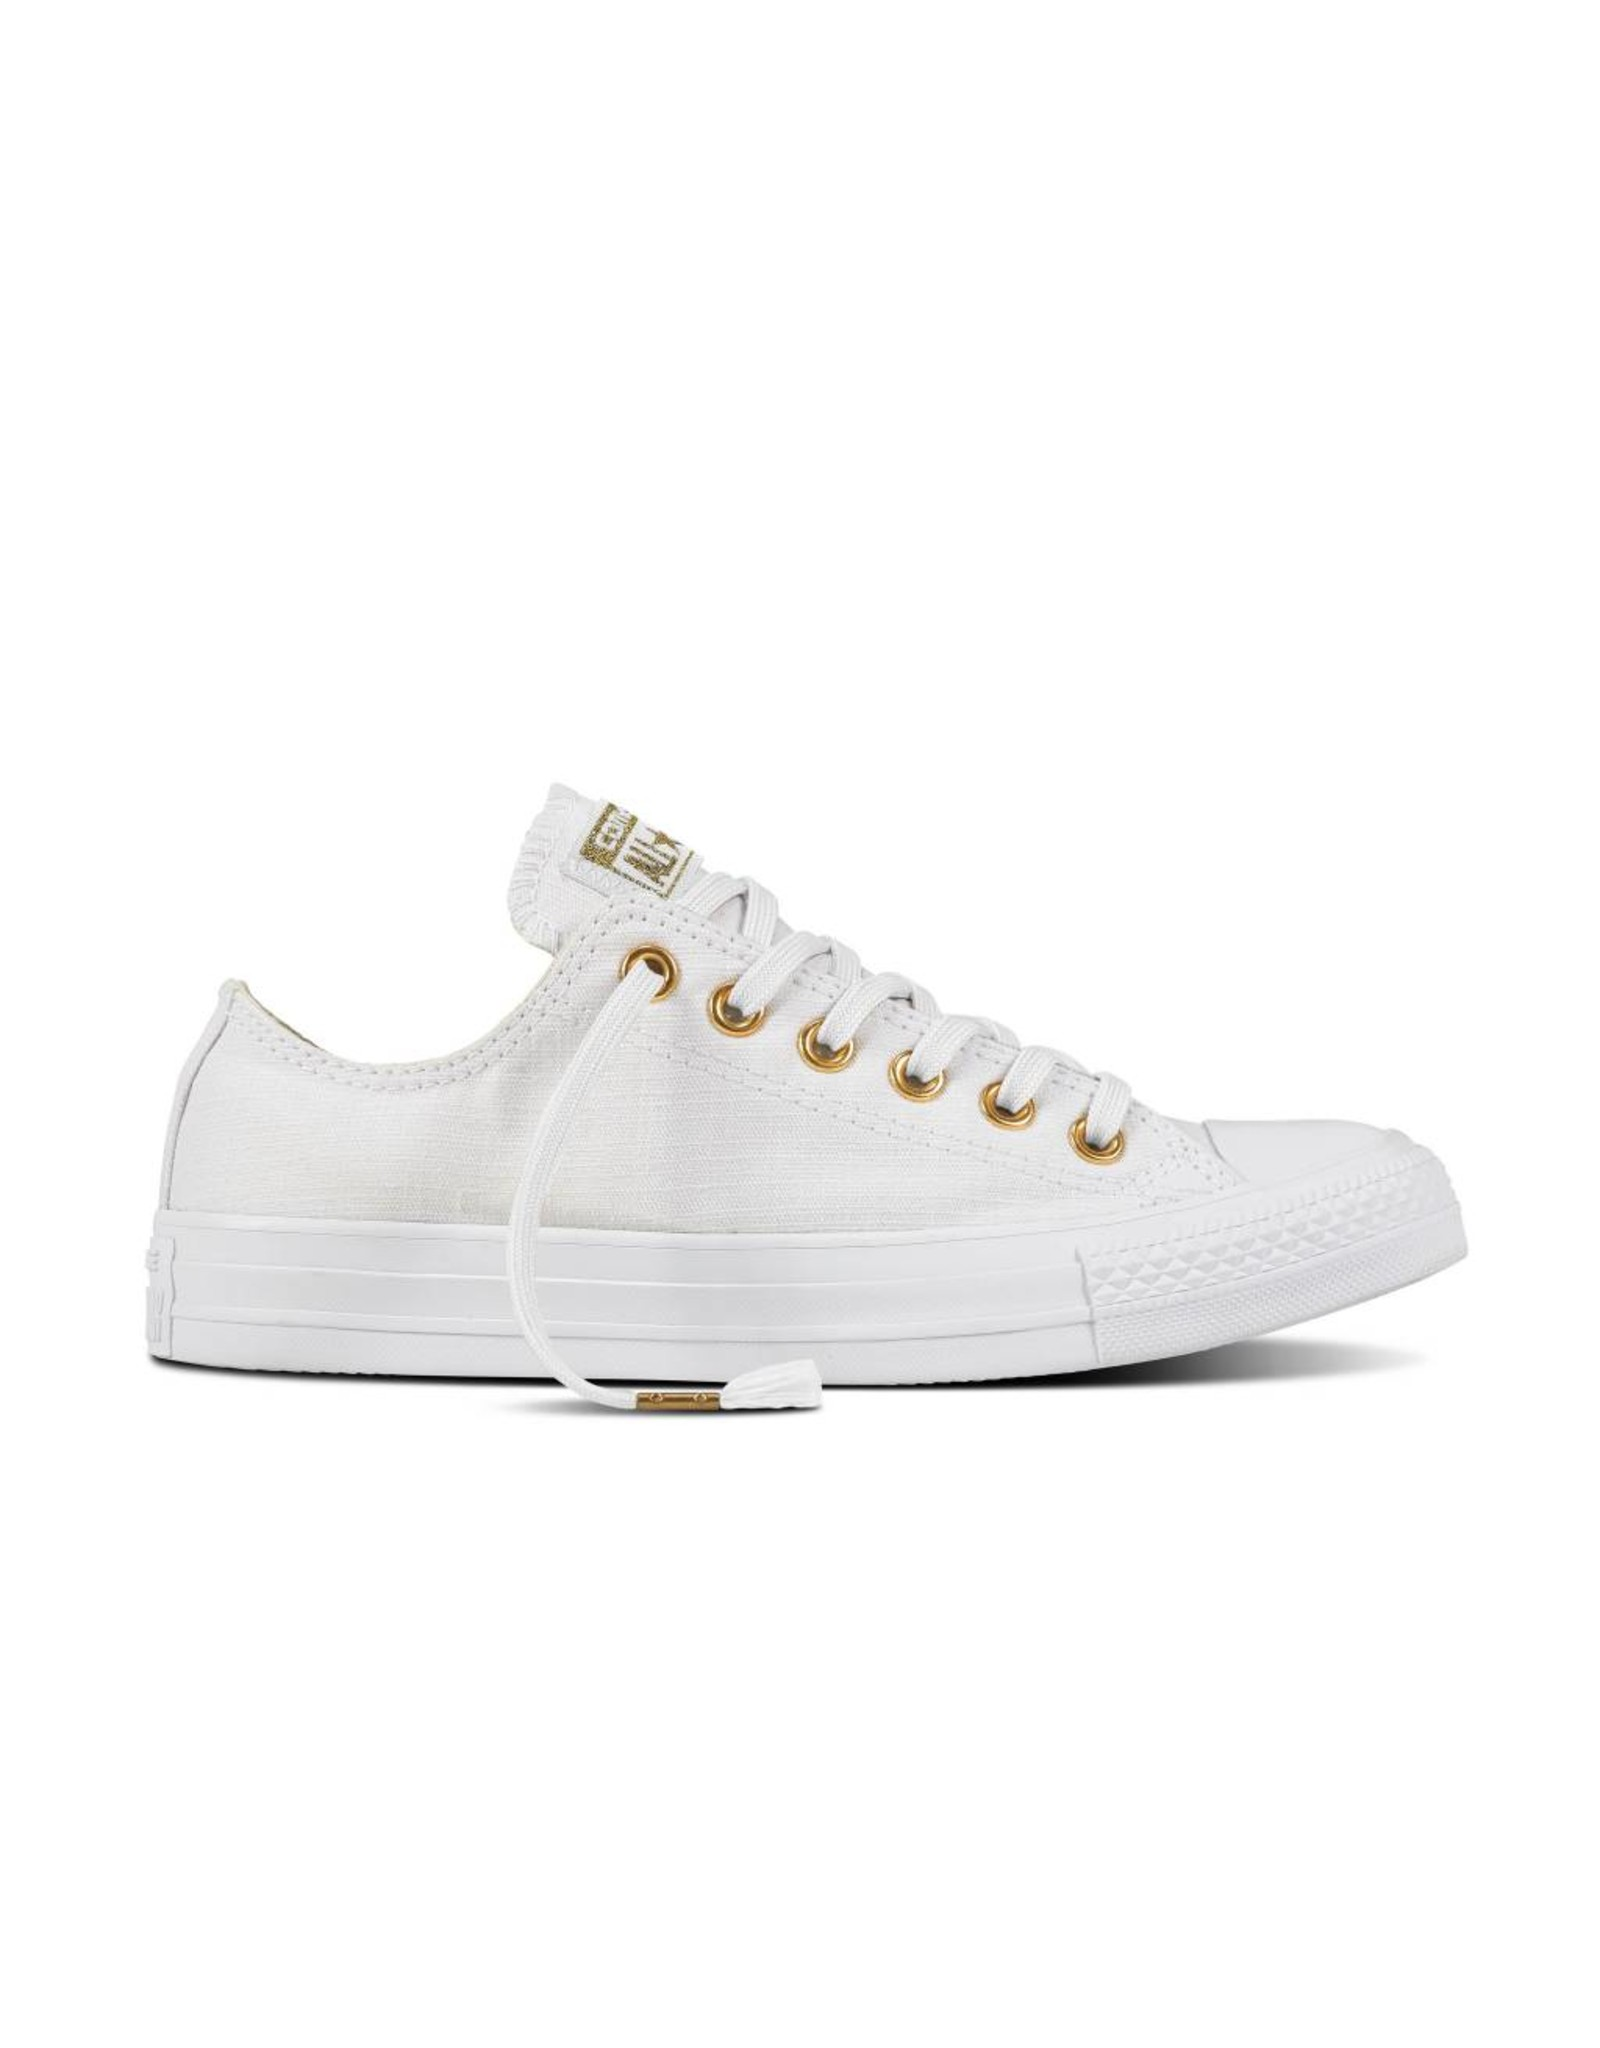 CONVERSE CHUCK TAYLOR OX WHITE/DRIFTWOOD/WHITE C12WDR-560643C